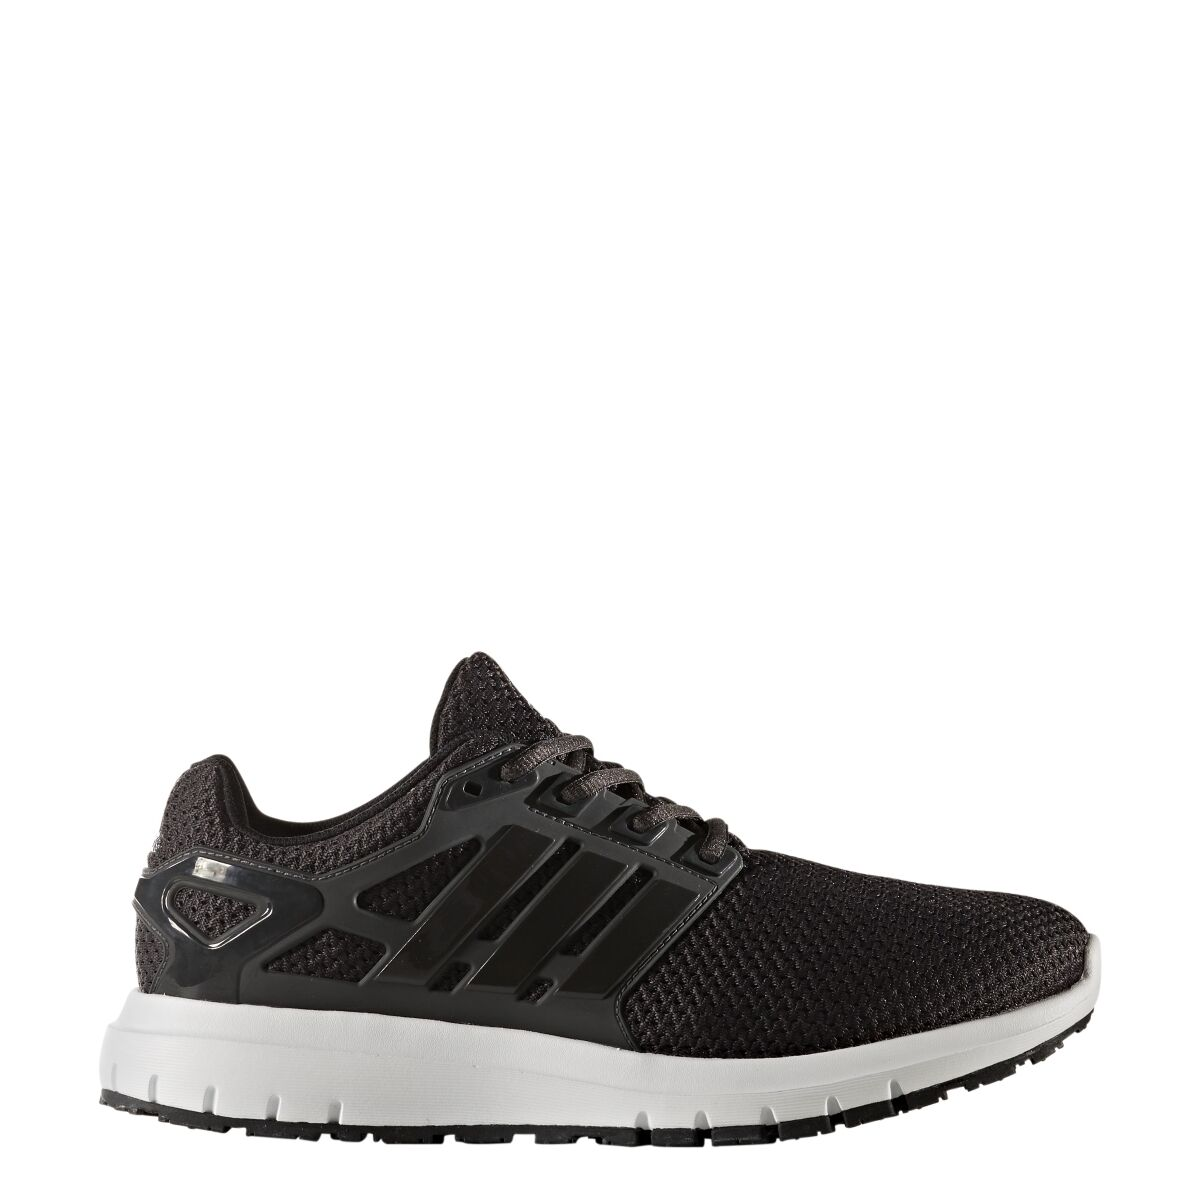 Mens Adidas Energy Cloud Black Running Athletic Shoes BY9058 Sizes 12.5-14 Wide